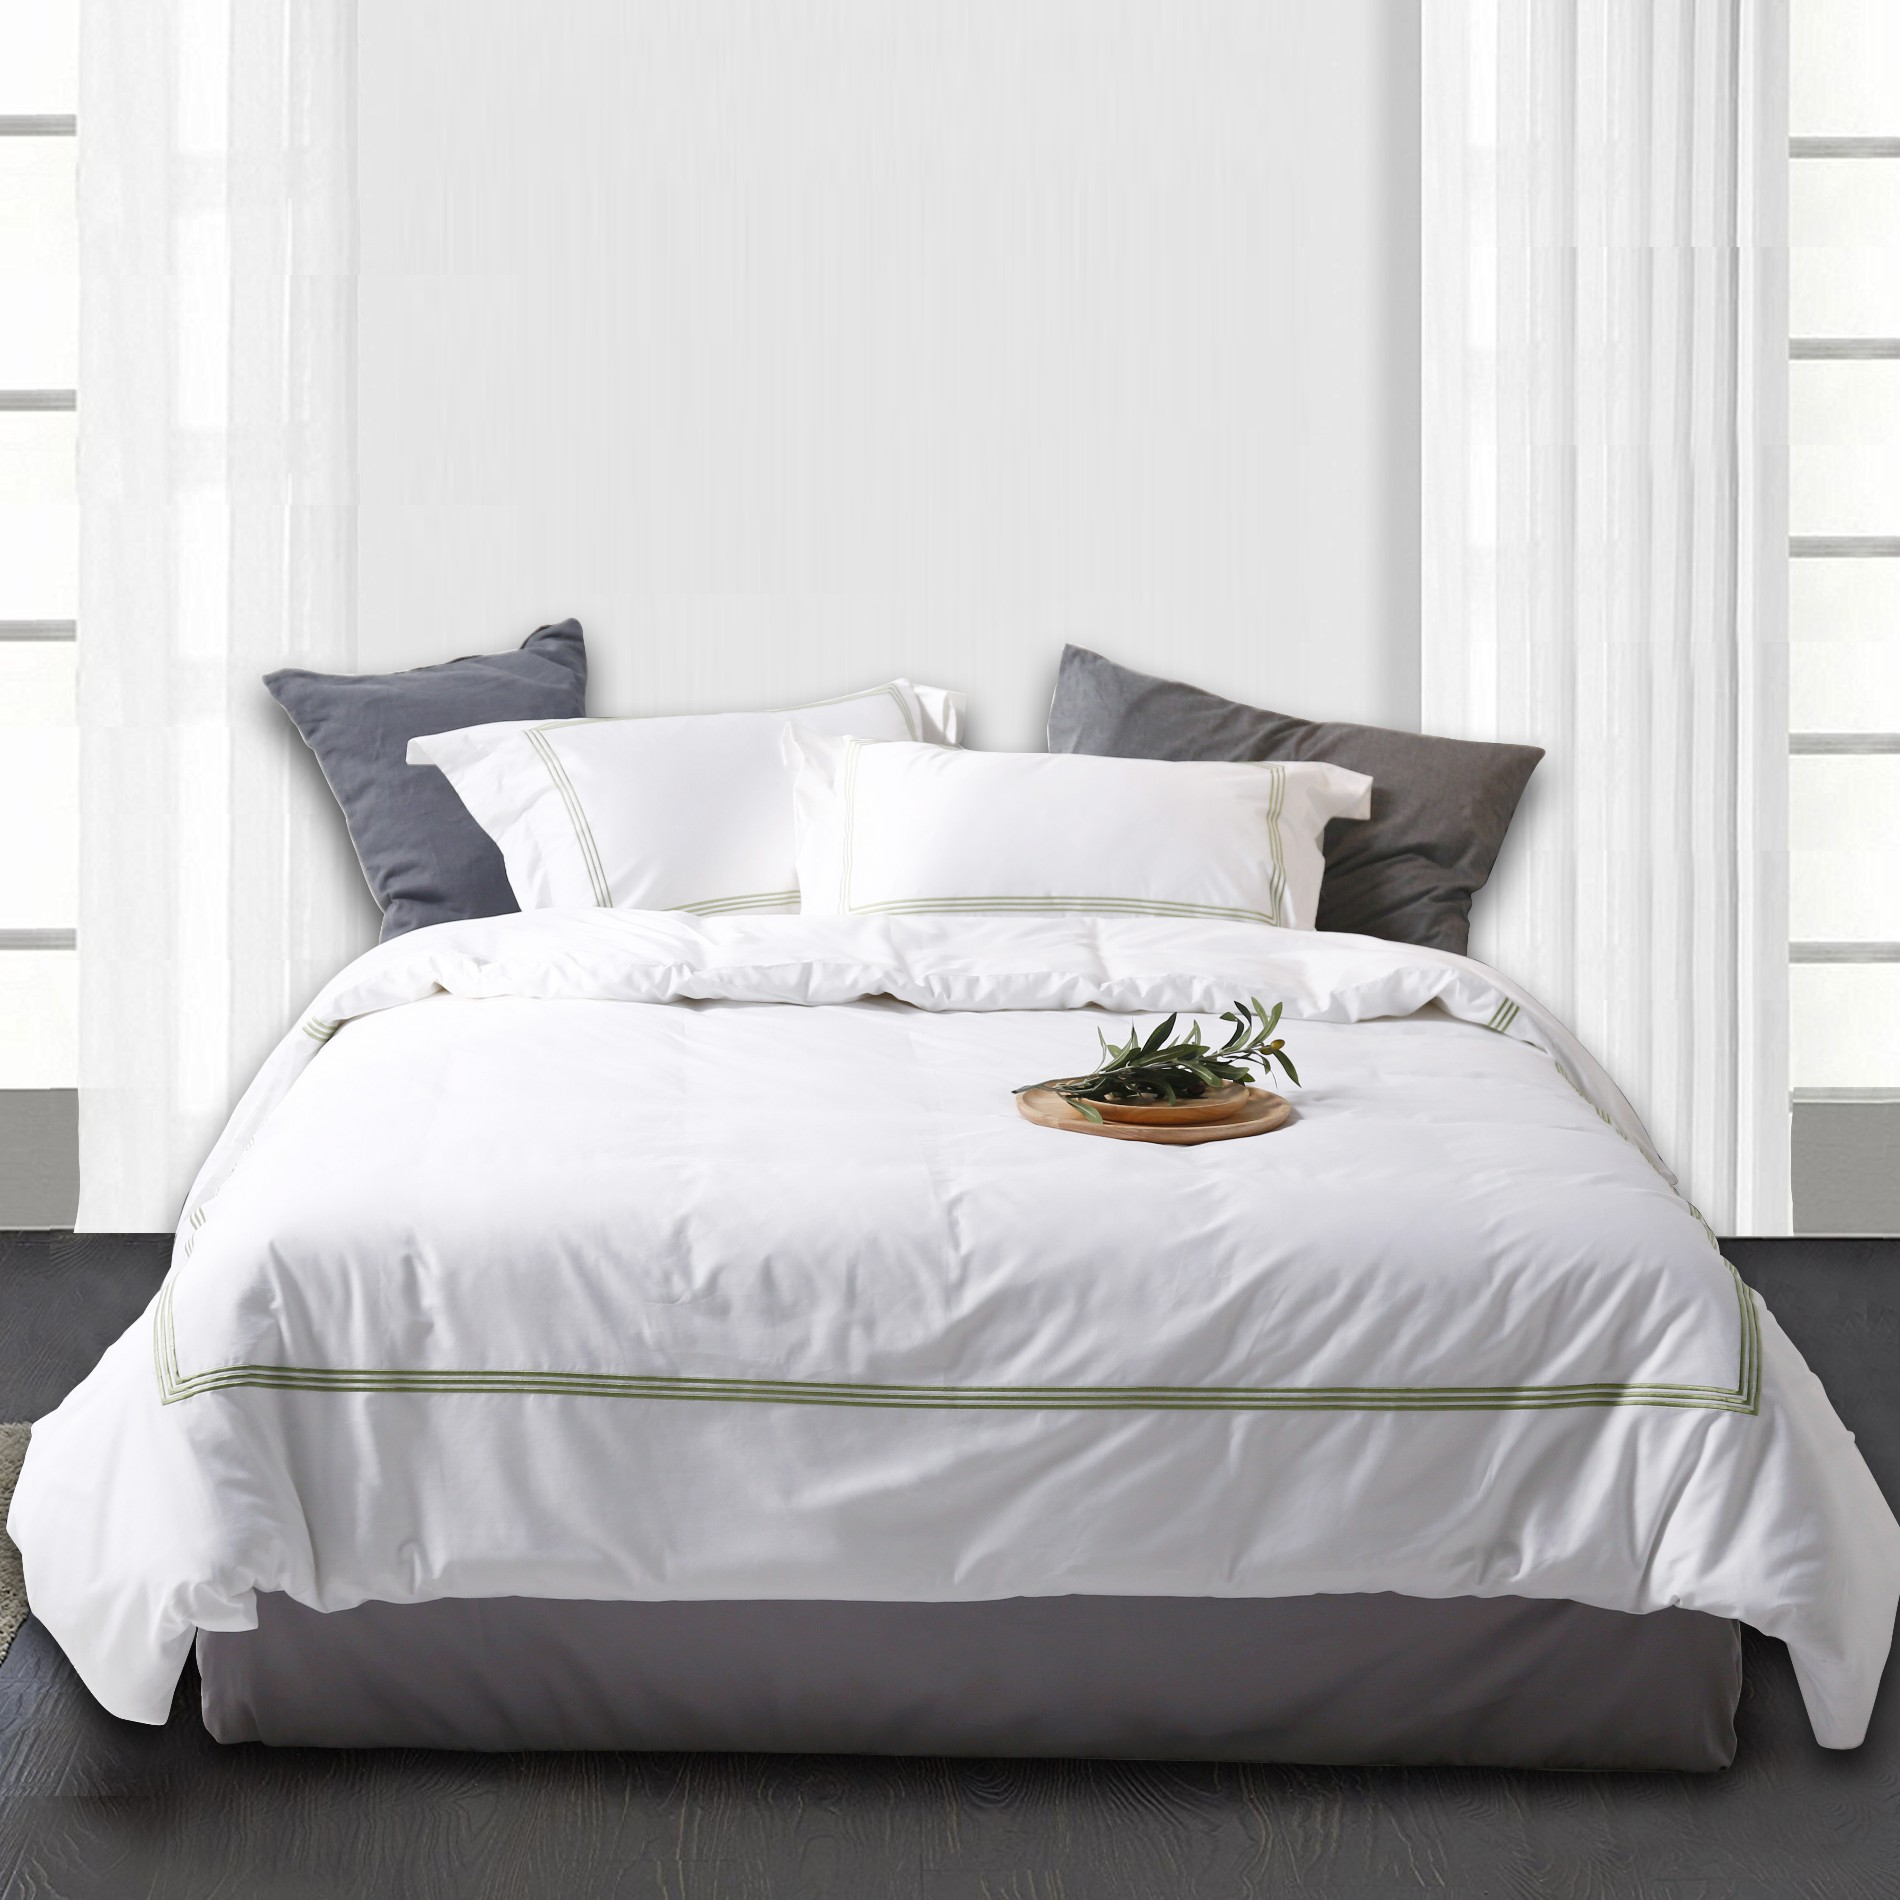 Hotel Bed Linen Manufacturers, Hotel Bed Linen Factory, Supply Hotel Bed Linen